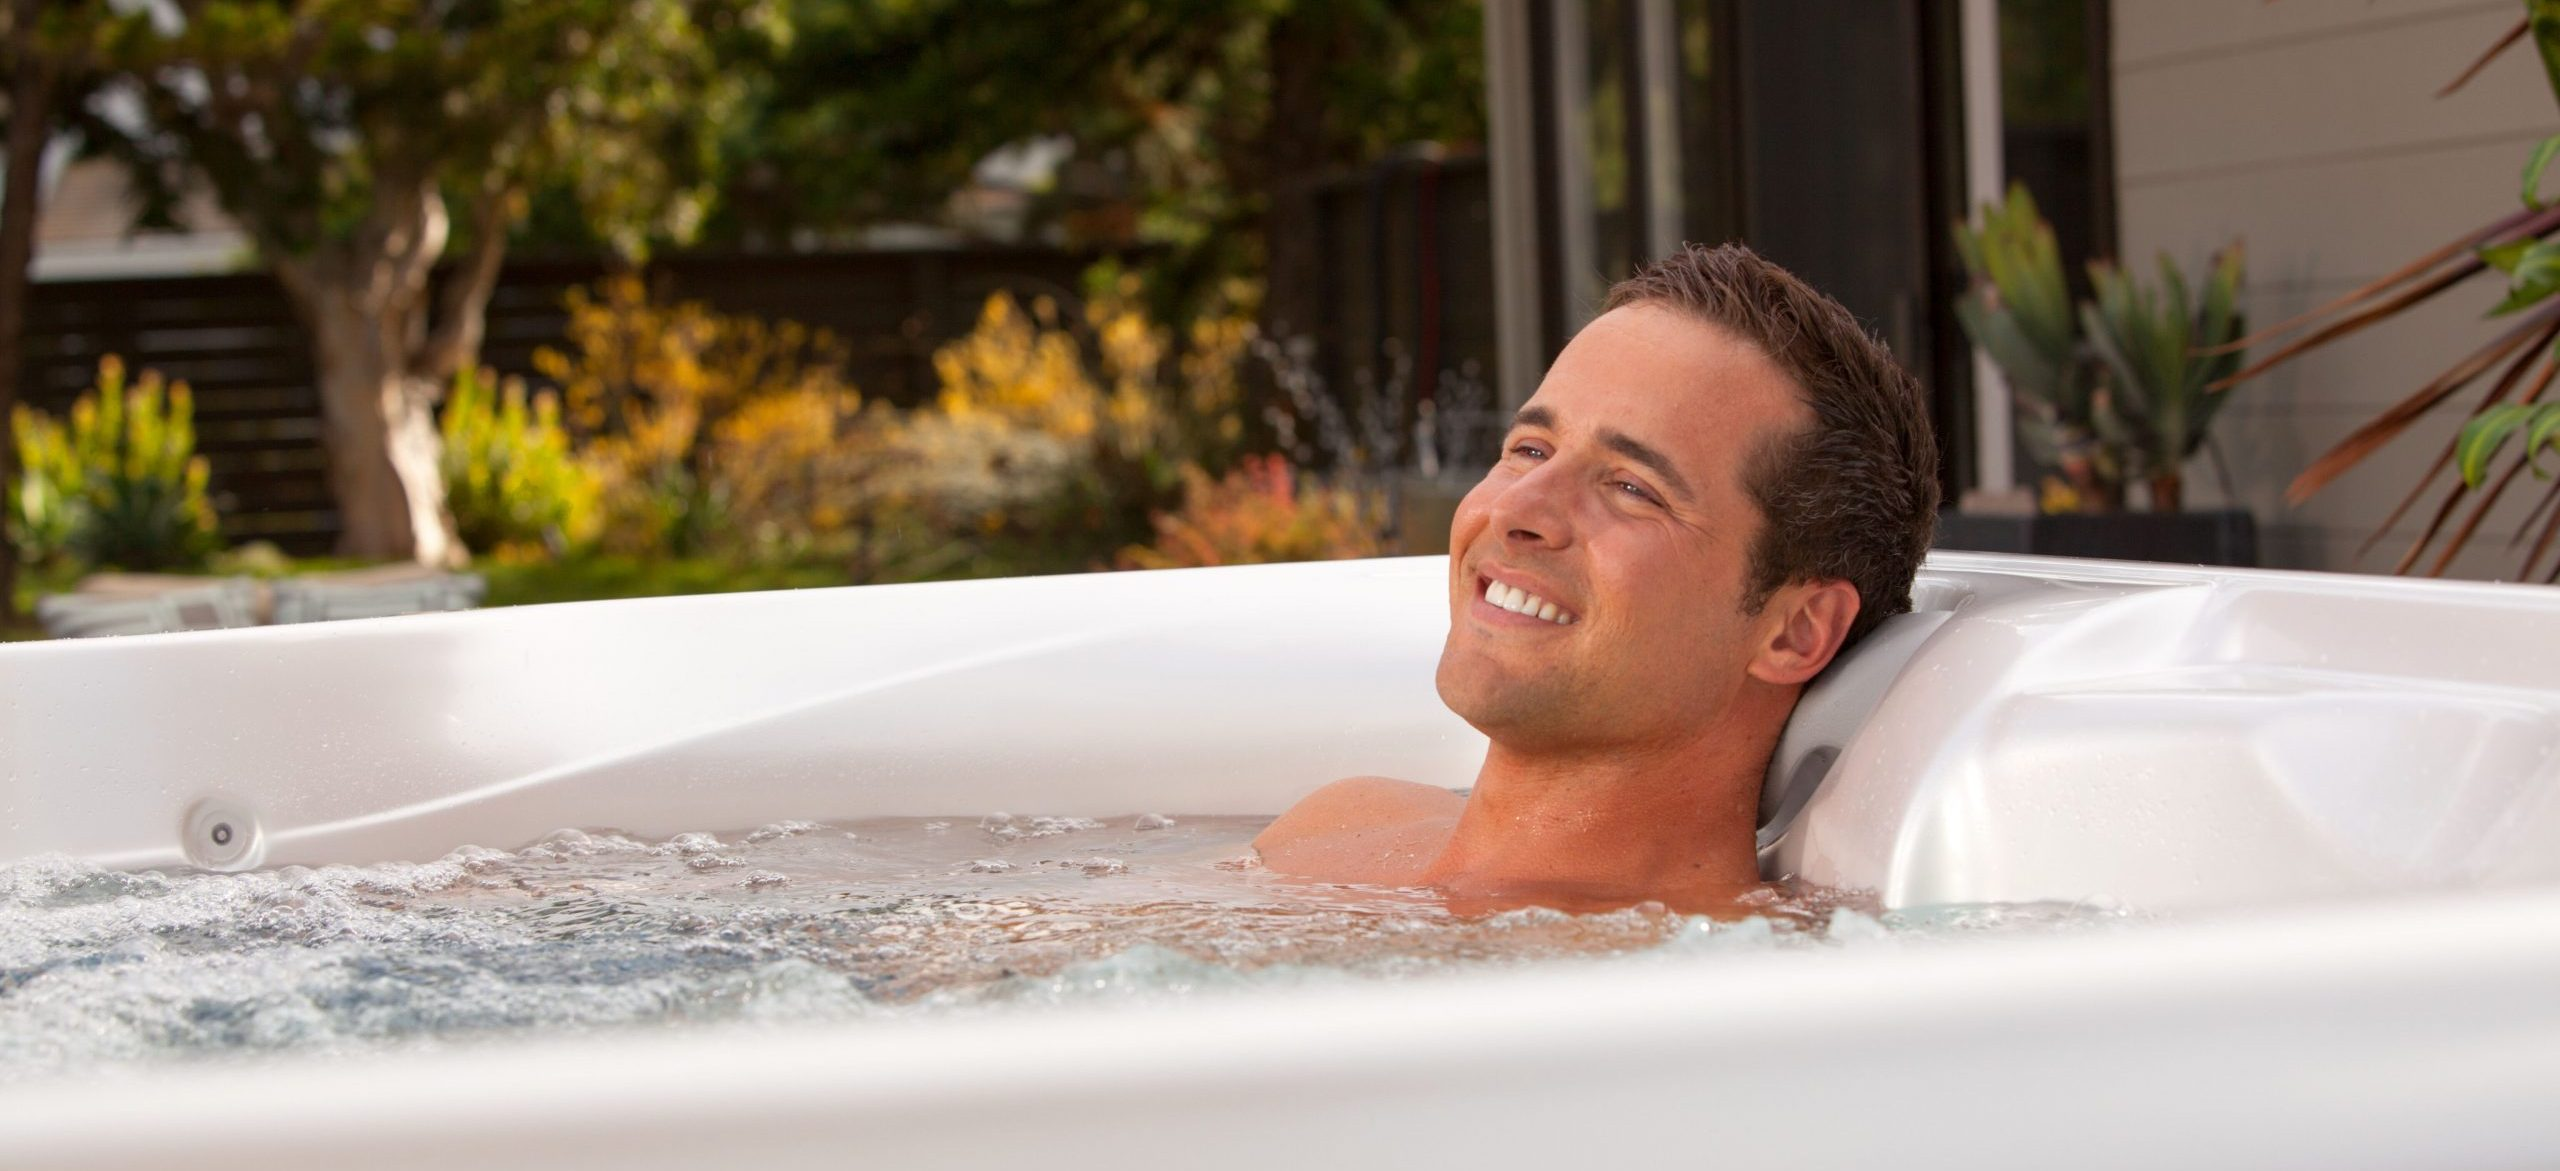 How to Create More Privacy Around Your Hot Tub